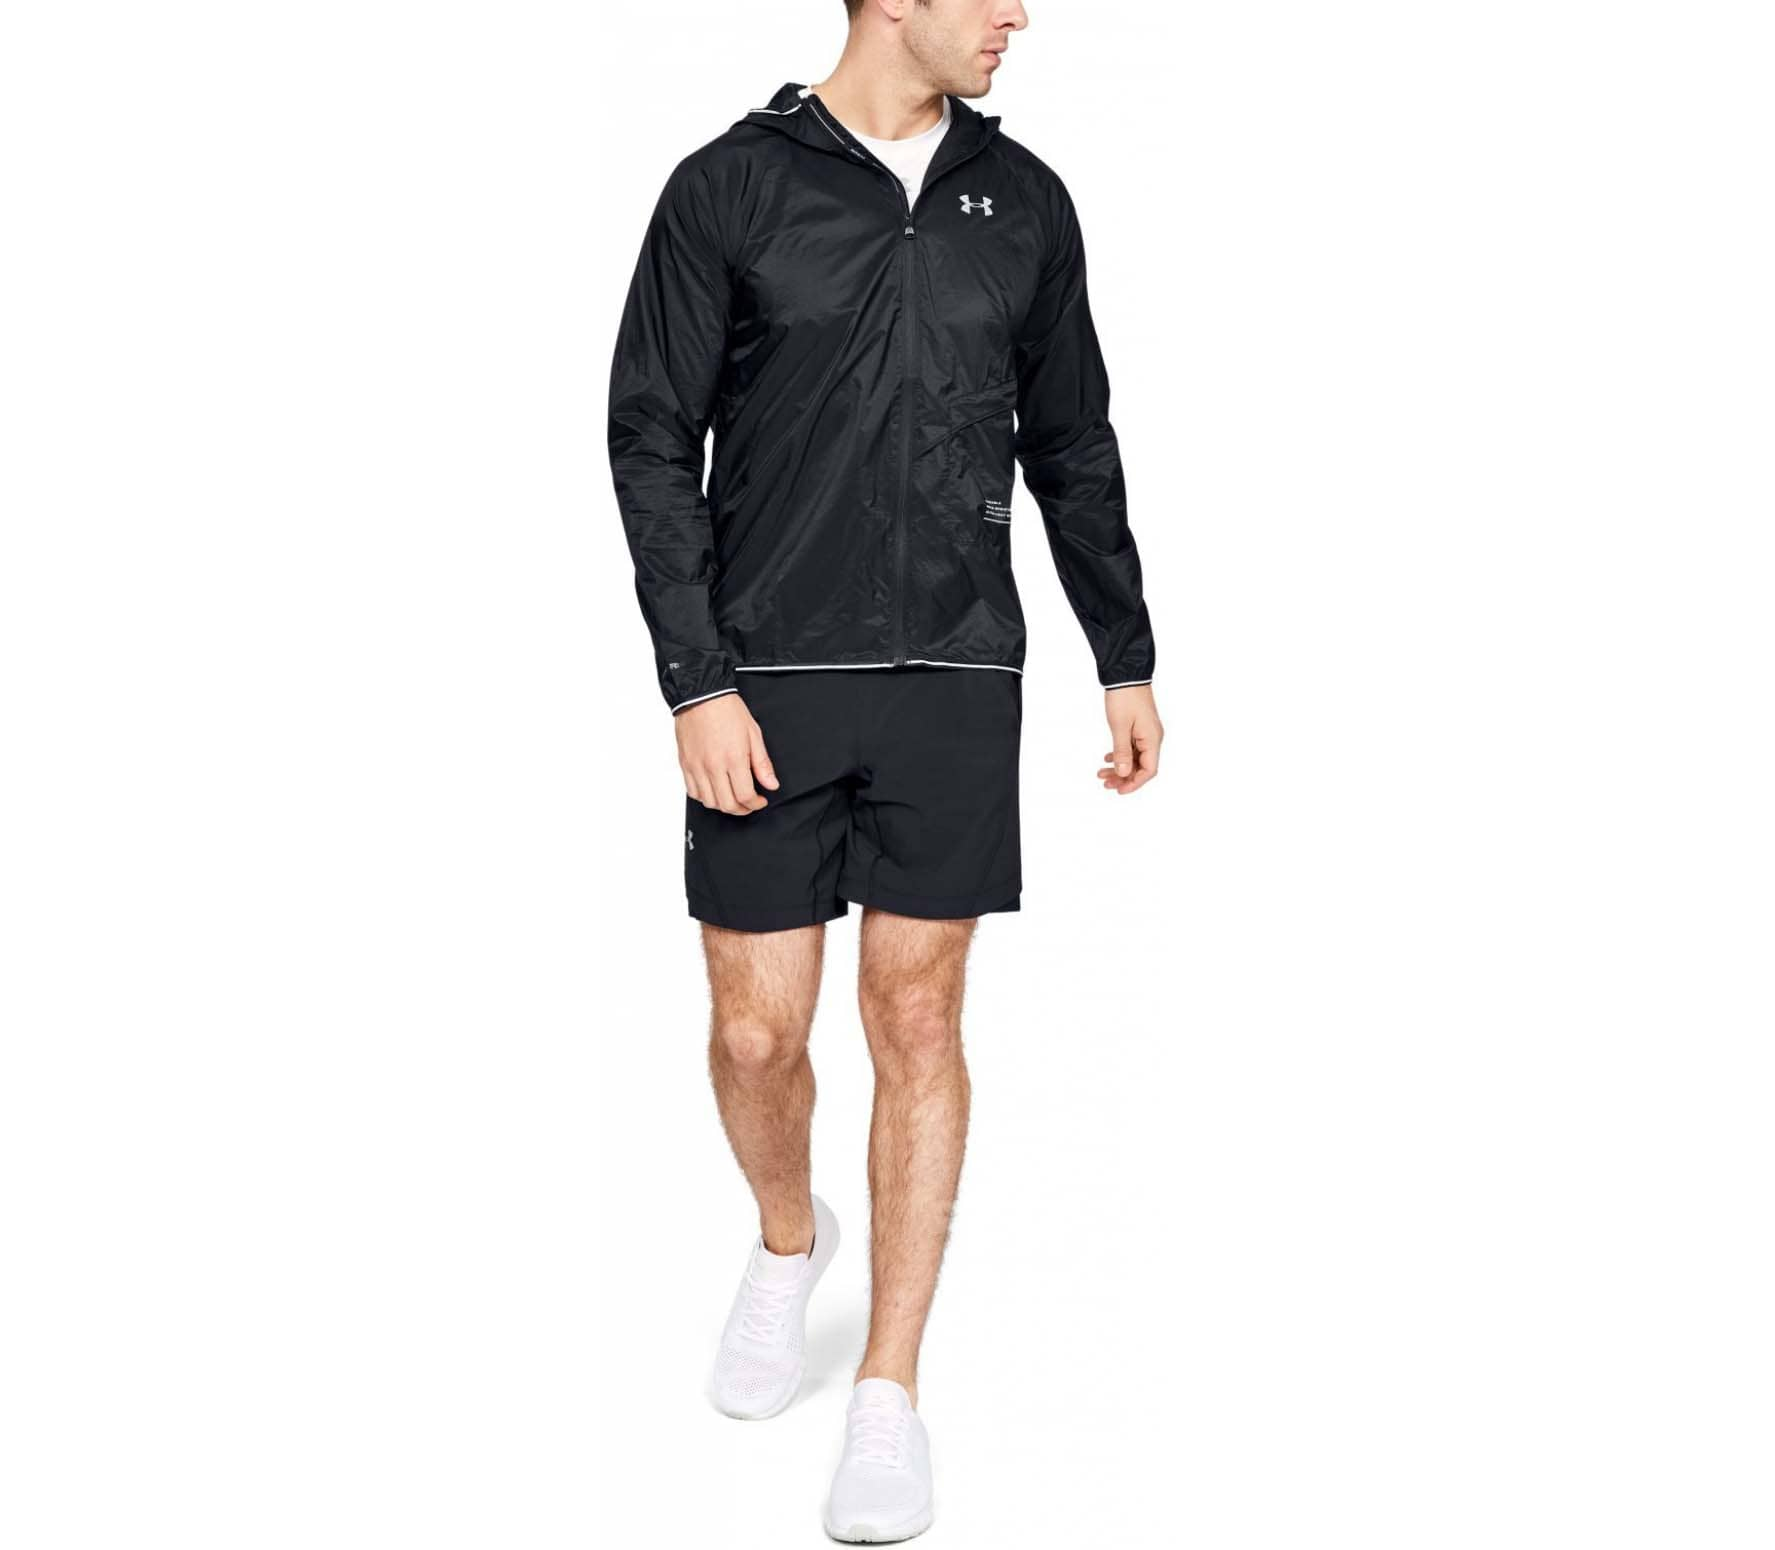 690a2f06f237 Under Armour Qualifier Storm Packable Men Running Jacket black